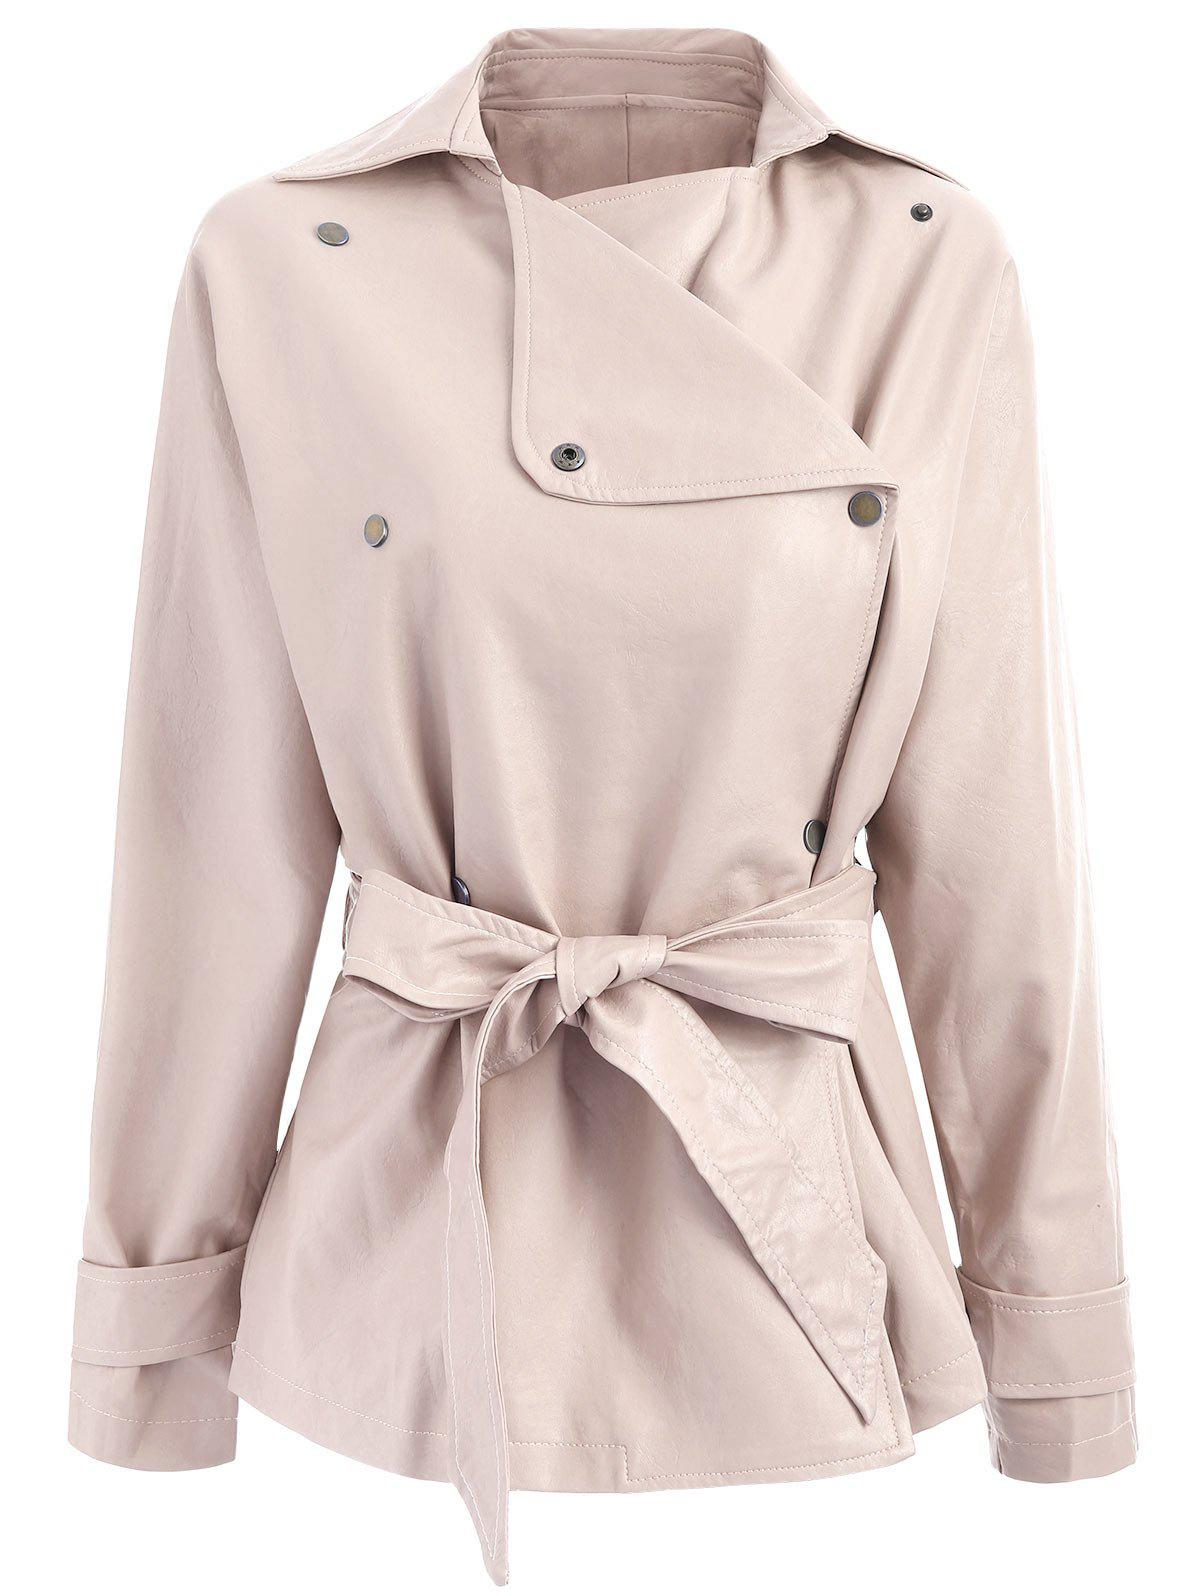 Chic Faux Leather Belted Turndown Collar Jacket